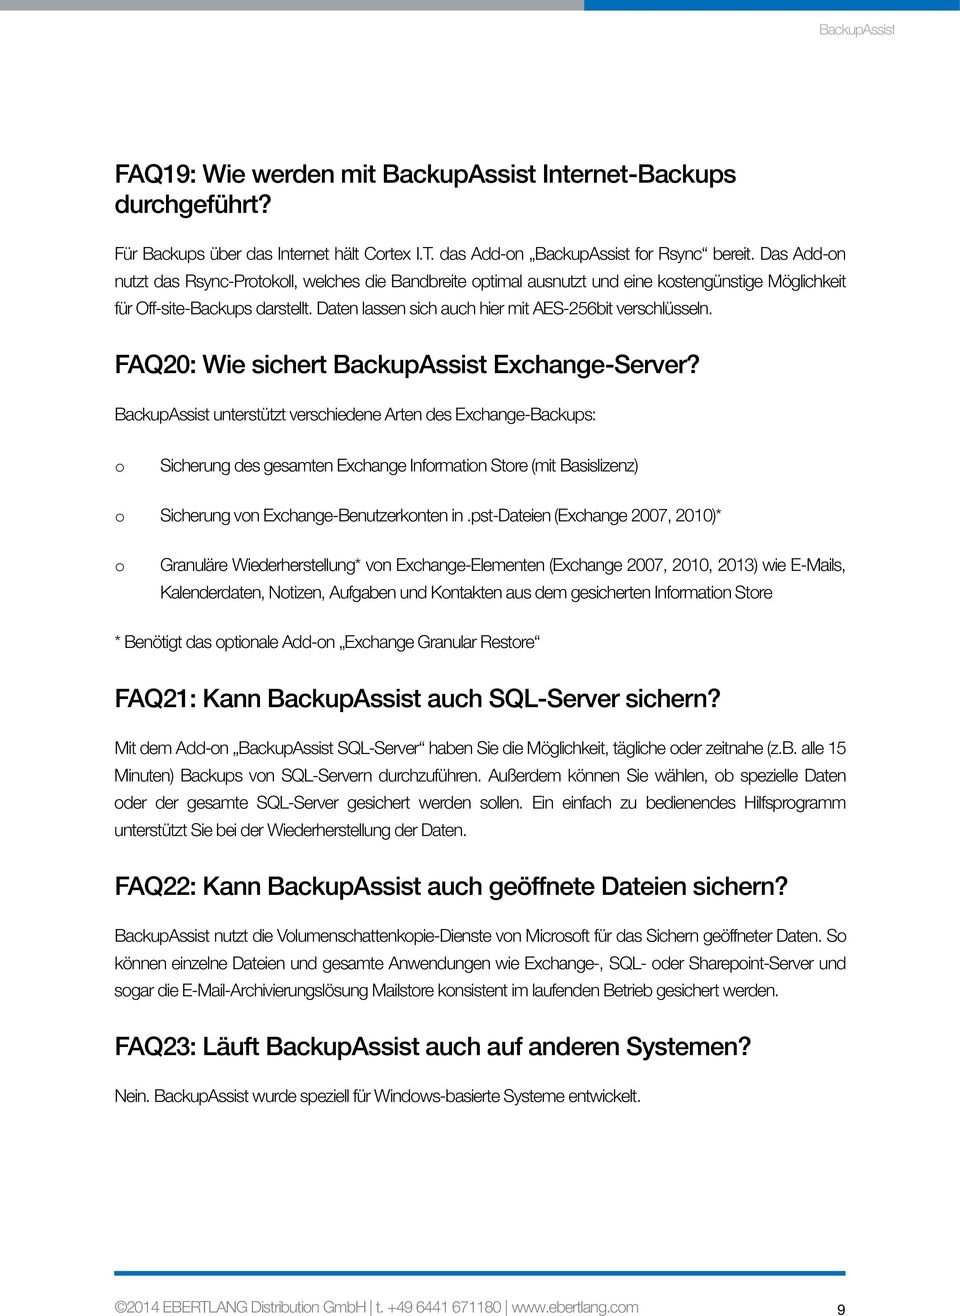 FAQ20: Wie sichert BackupAssist Exchange-Server?